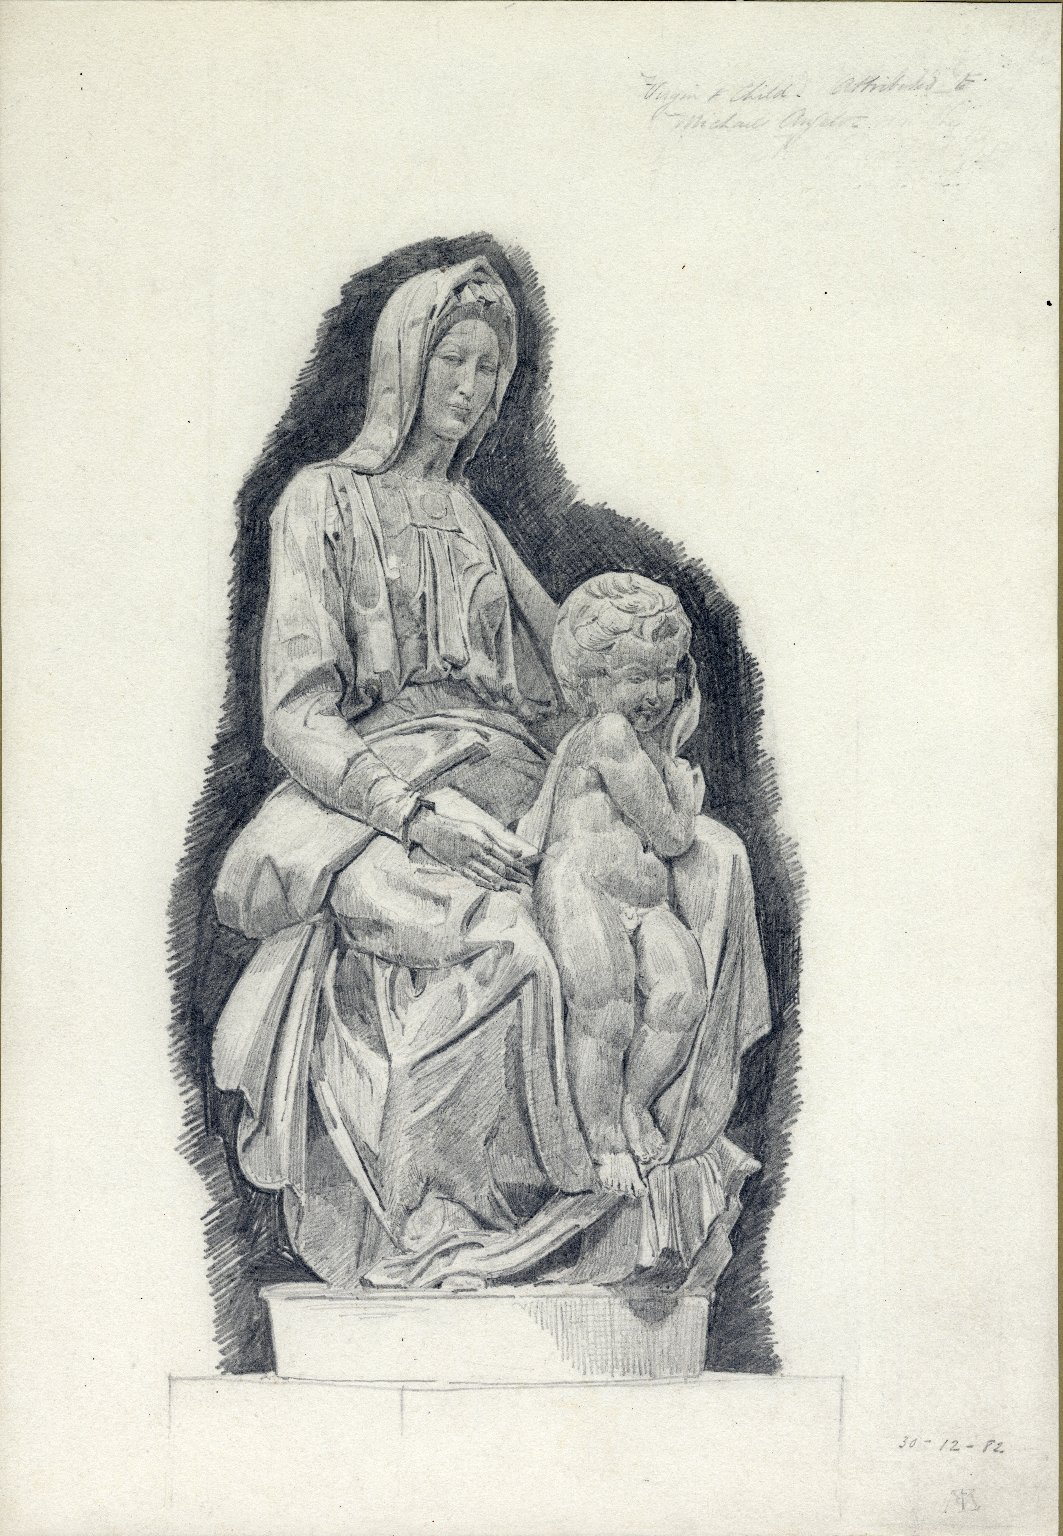 Drawing of statue of the Virgin and Child, attributed to Michelangelo